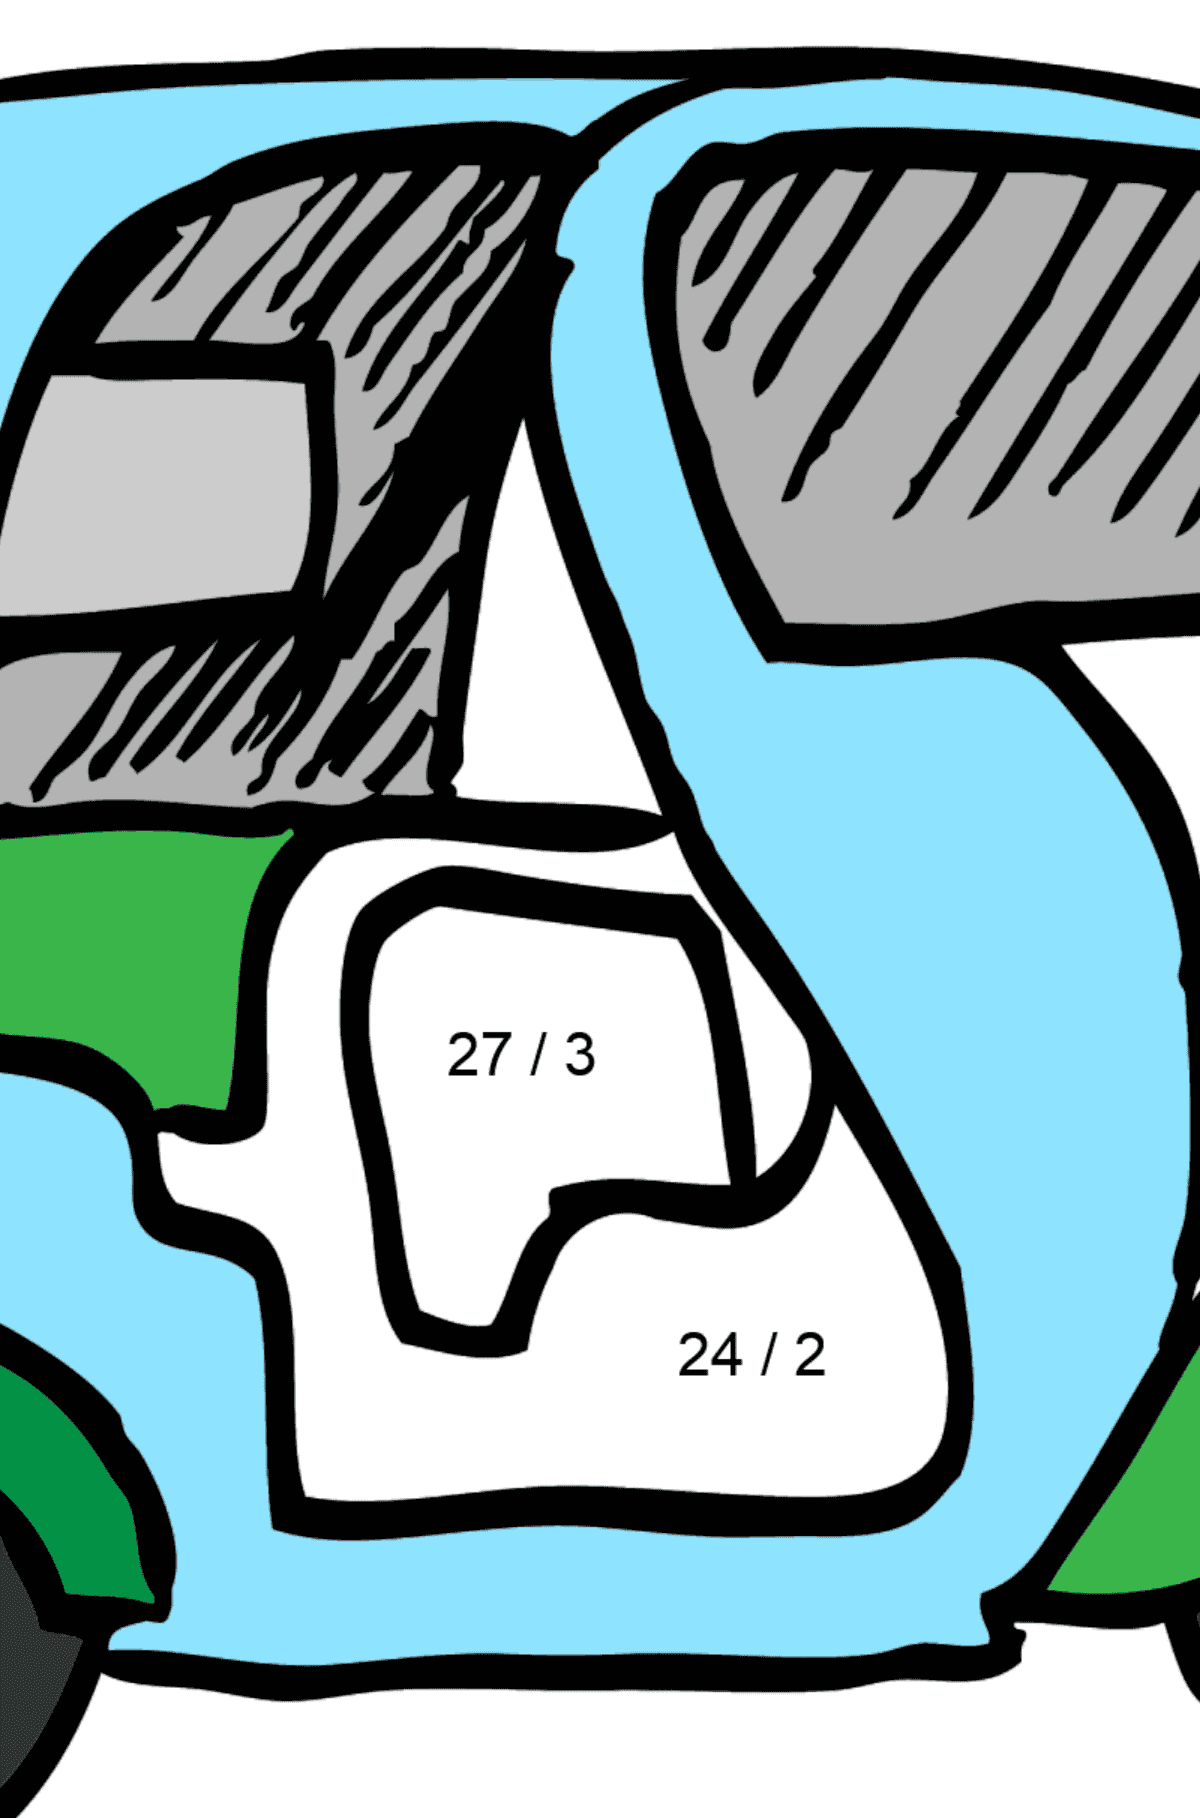 Coloring Page - A Moped is Carrying Mail - Math Coloring - Division for Kids